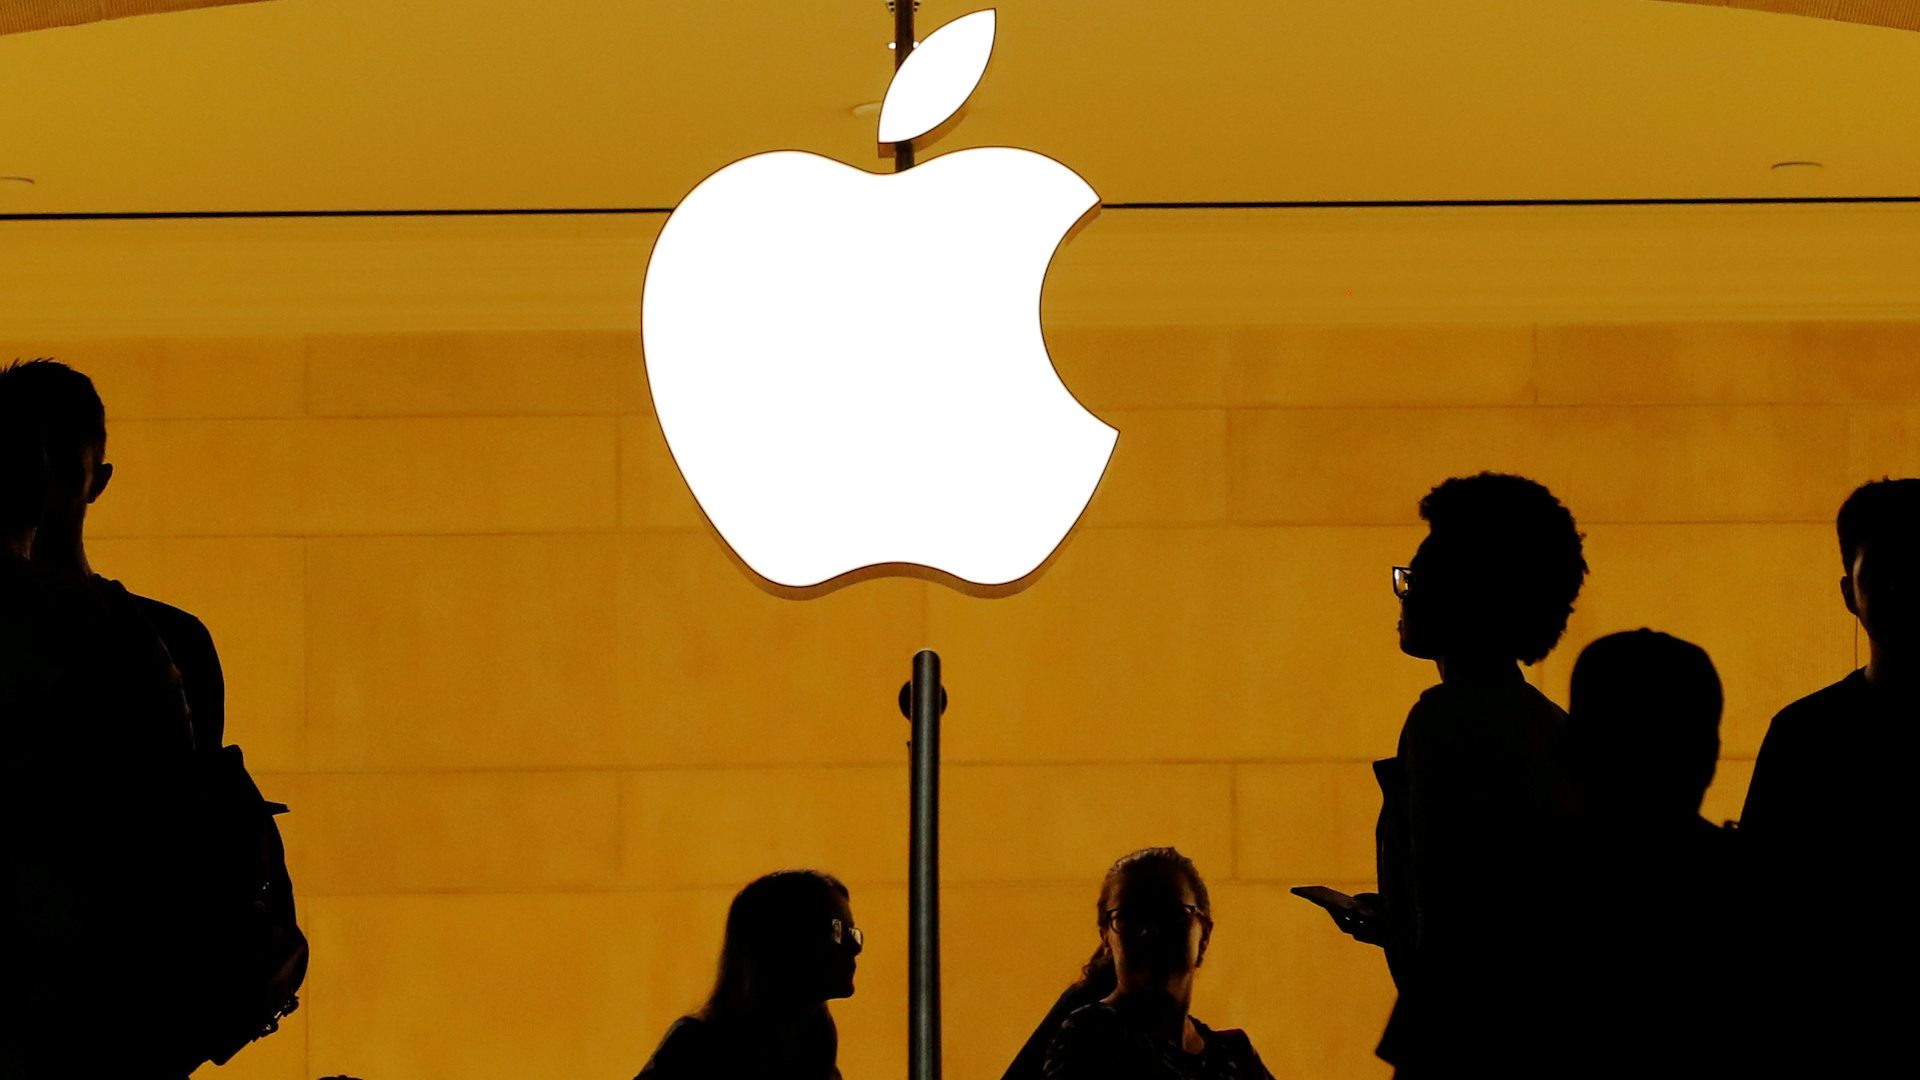 Supreme Court rules against Apple, allowing lawsuit targeting App Store to proceed